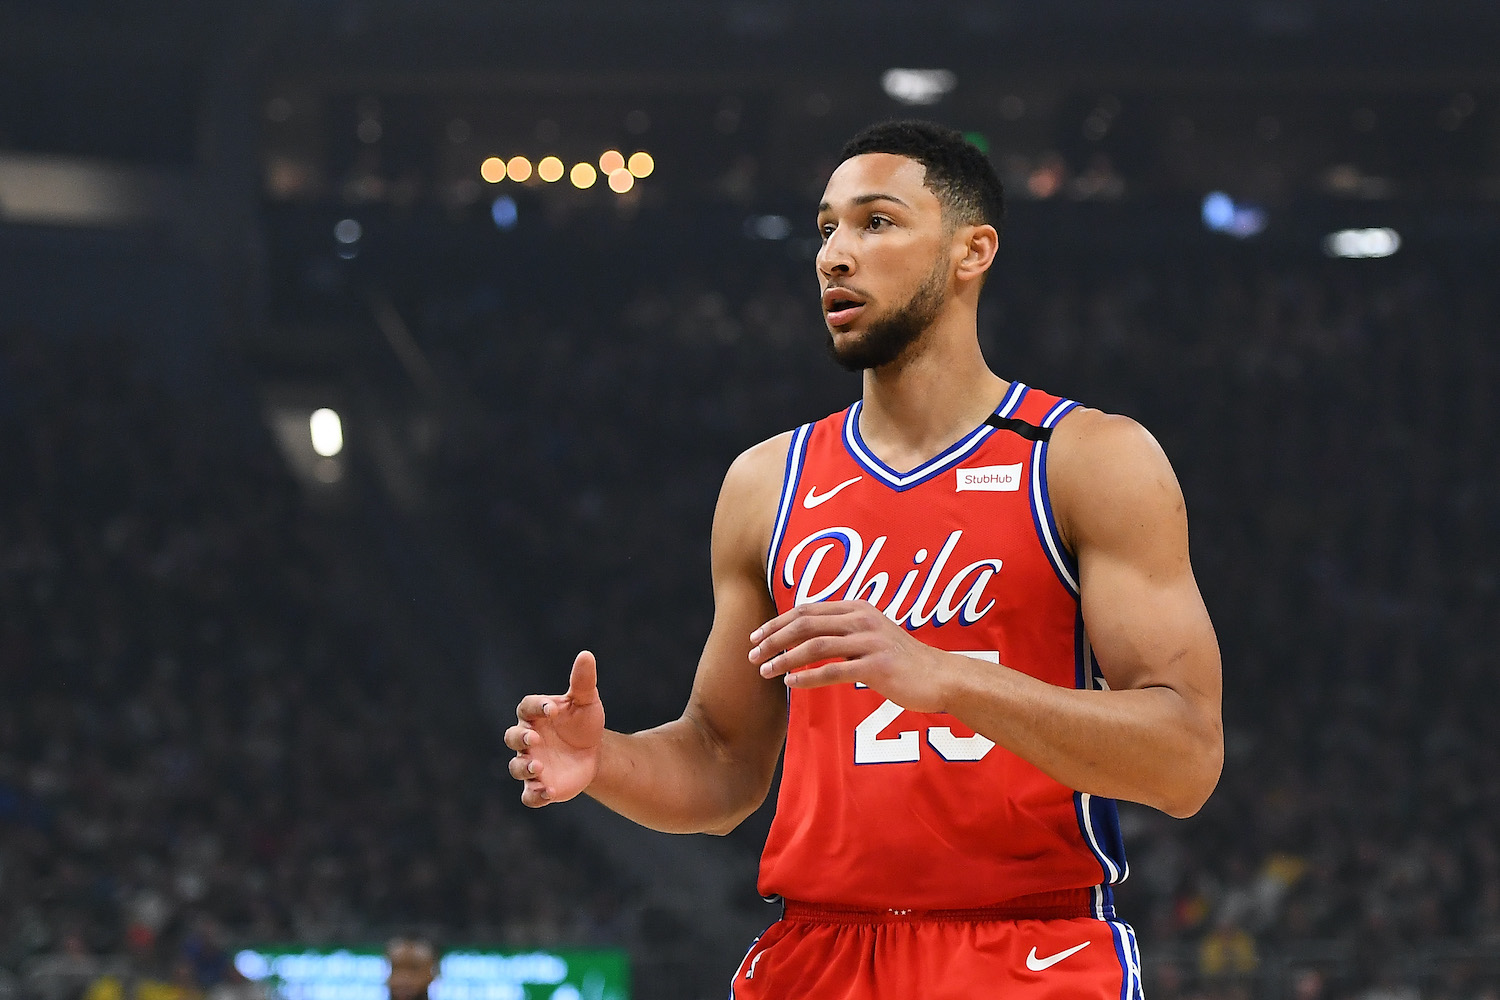 Ben Simmons made a bet with a 76ers executive years ago, and now he's cashing in the bet in an eye-catching way.